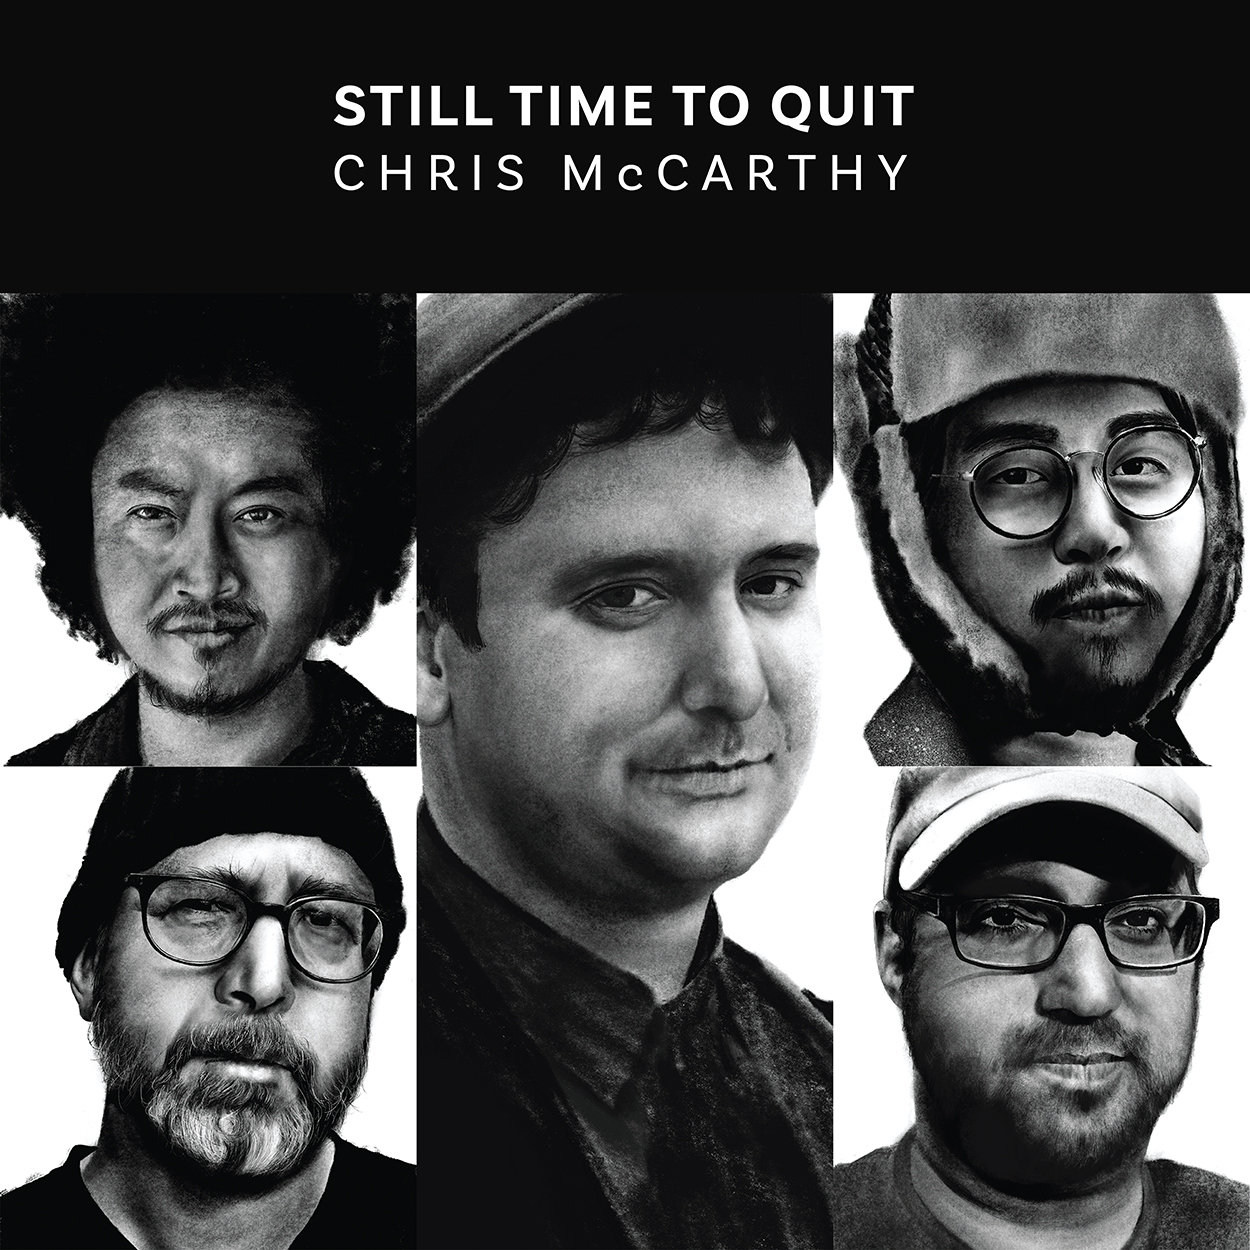 NEW RELEASE: Chris McCarthy's Ropeadope Debut STILL TIME TO QUIT is out 4/3